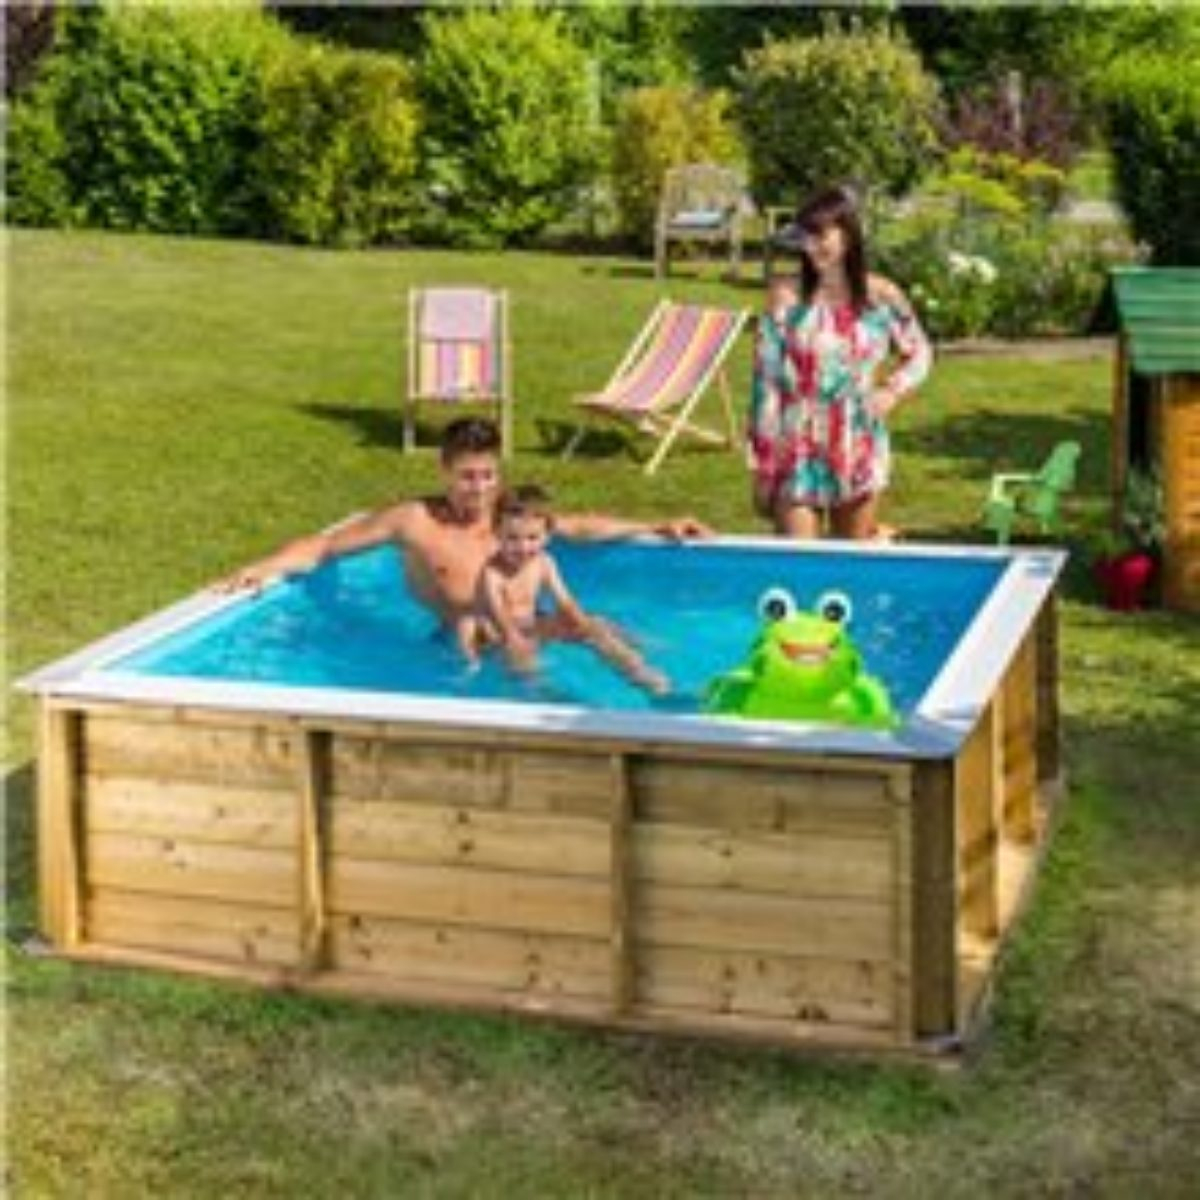 Pistoche 2M X 2M Wooden Pool With Built In Safety Cover And Filter dedans Piscine Pistoche